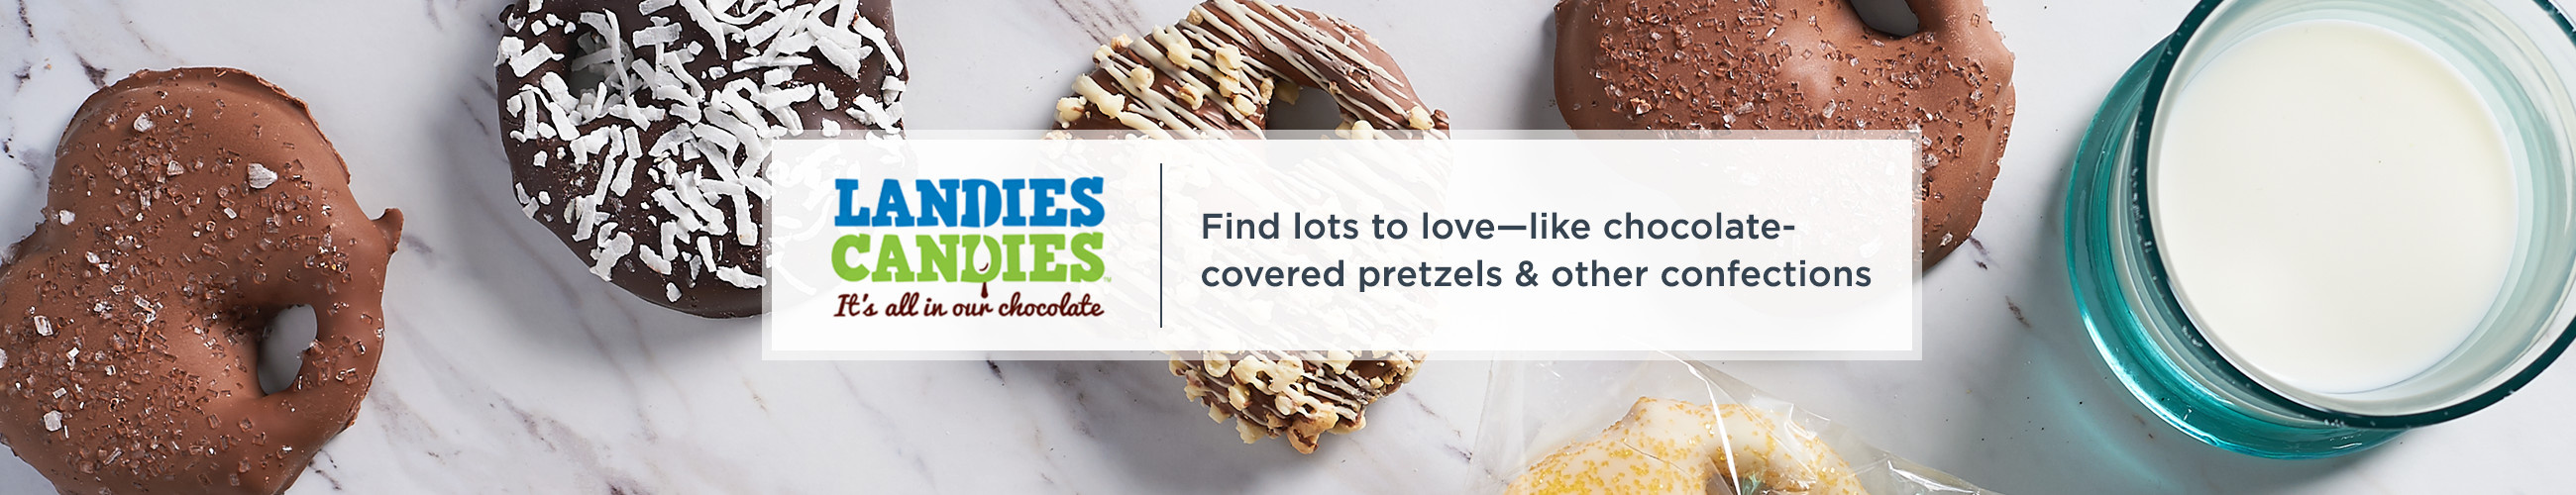 Landies Candies. Find lots to love—like chocolate-covered pretzels & other confections